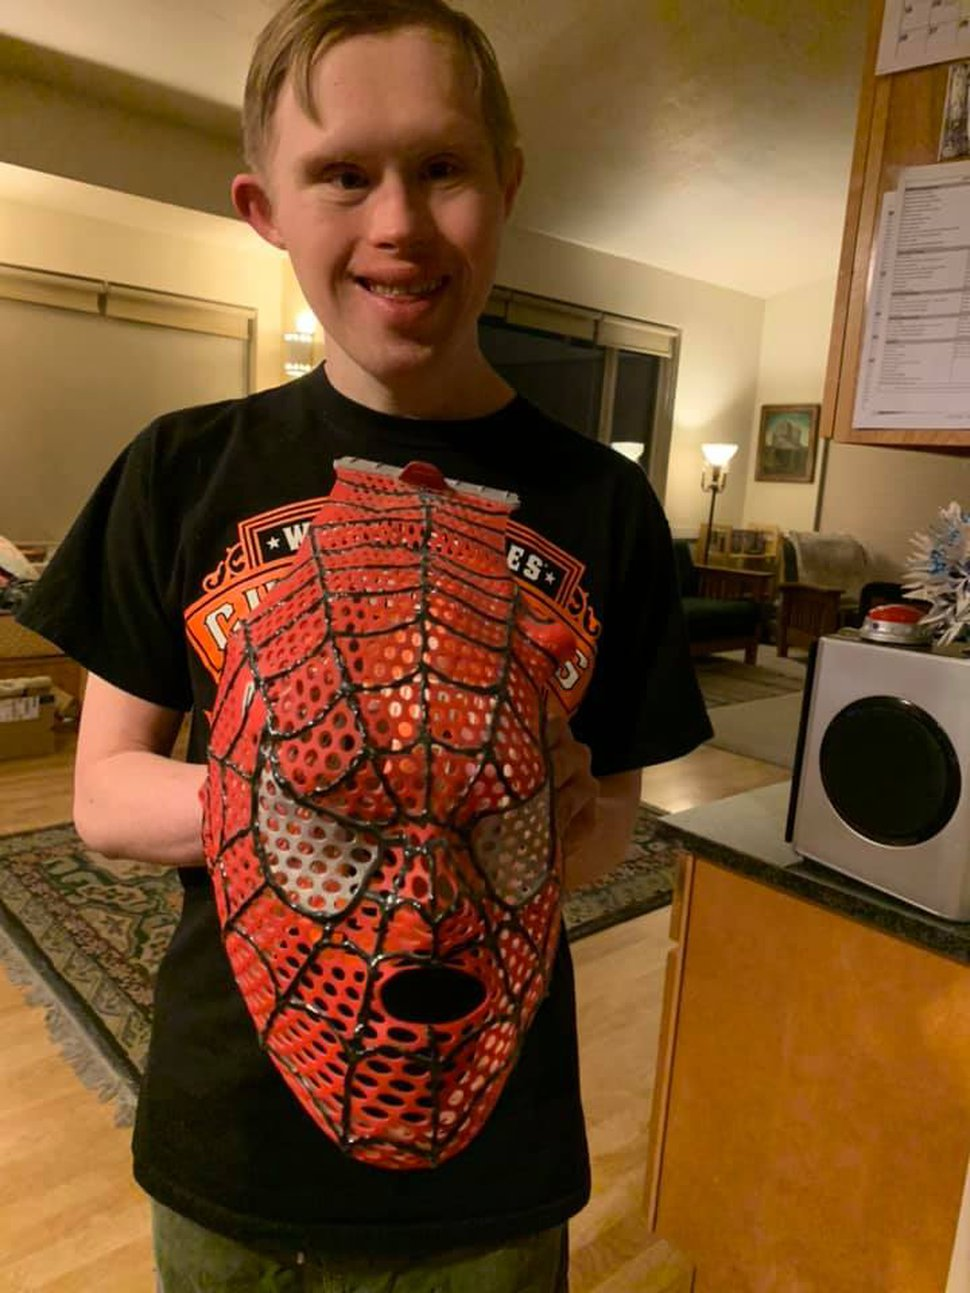 (Photo courtesy of Ann Larsen) Isaac Larsen shows off the Spider-Man mesh mask a radiation technician made that he could wear during treatments.